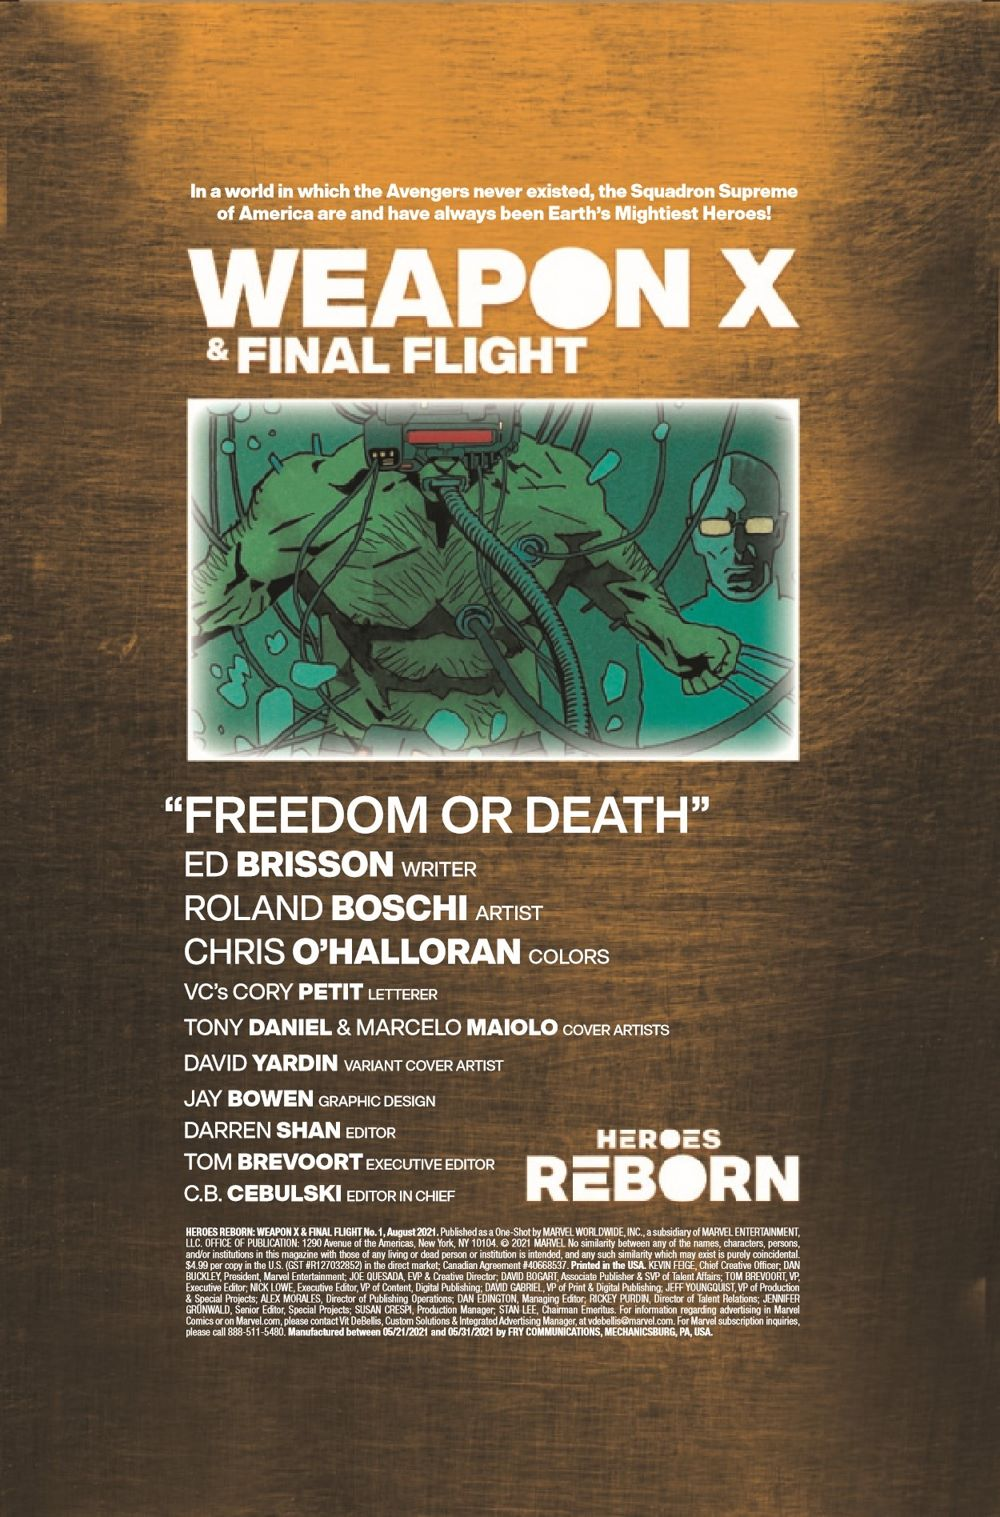 HRWEAPXFINALF2021001_Preview-2 ComicList Previews: HEROES REBORN WEAPON X AND FINAL FLIGHT #1